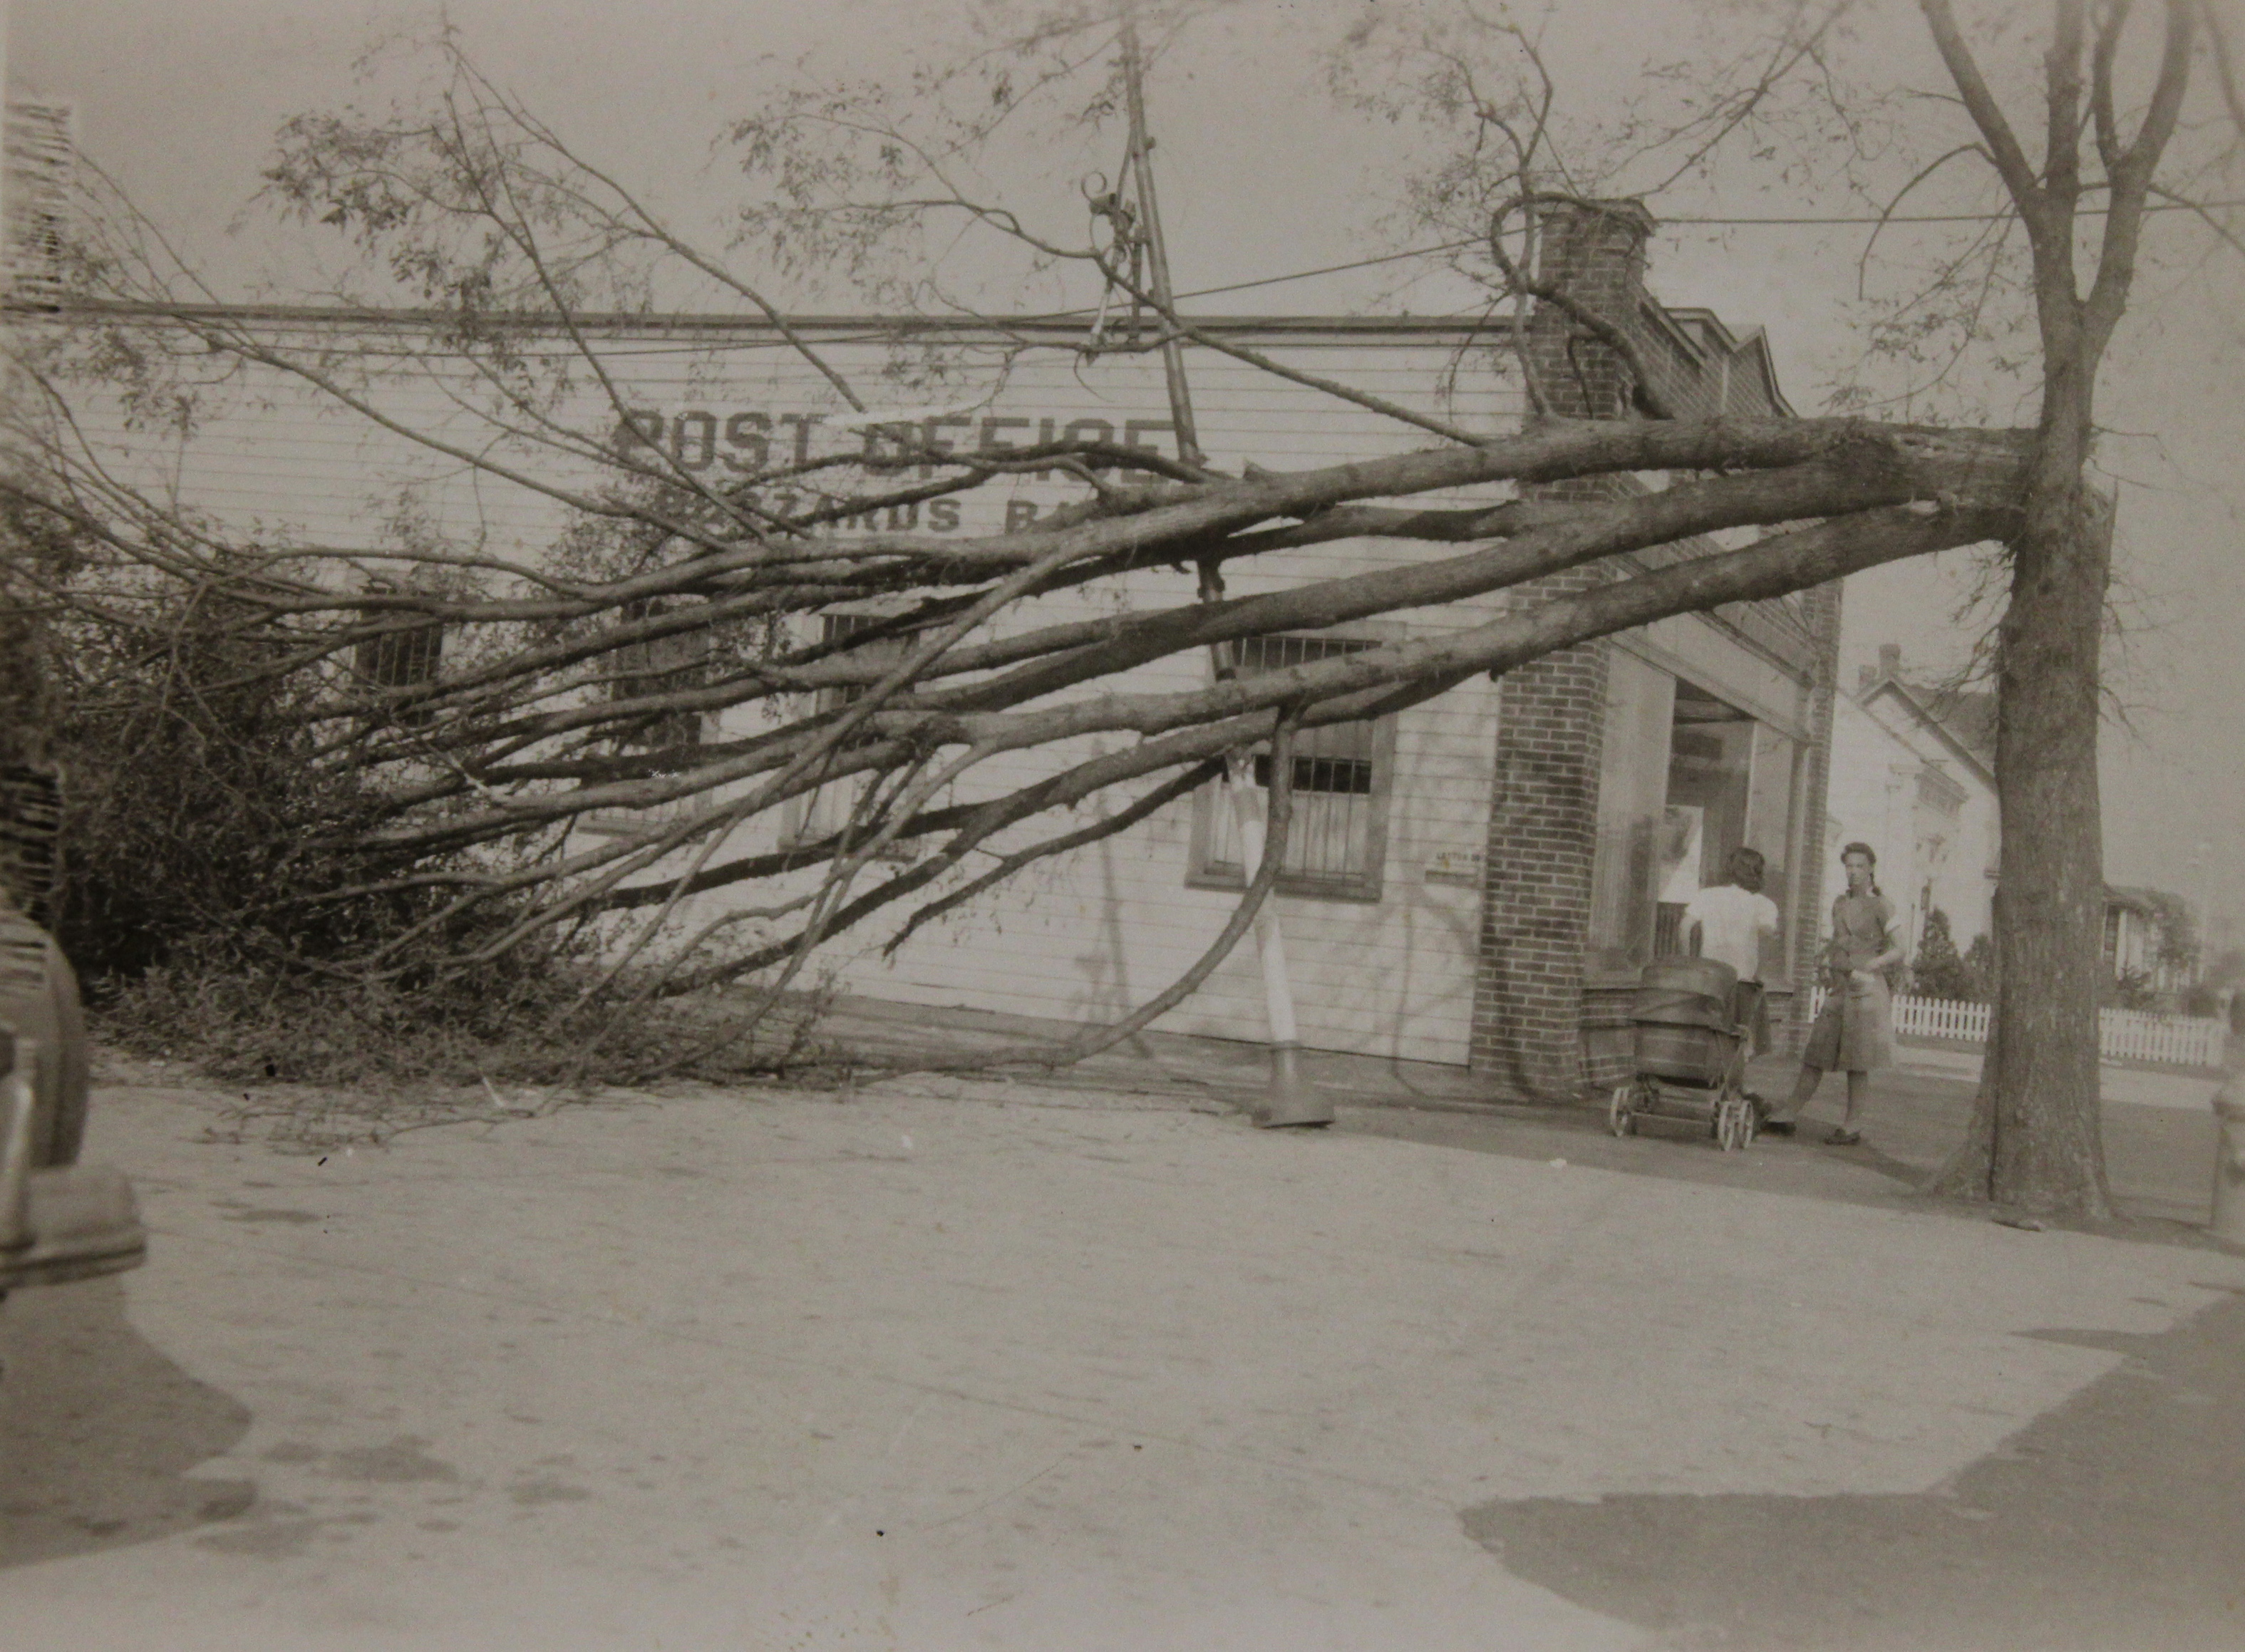 Hurricane-Damaged Tree and Utility Line outside Post Office, Buzzards Bay, Massachusetts